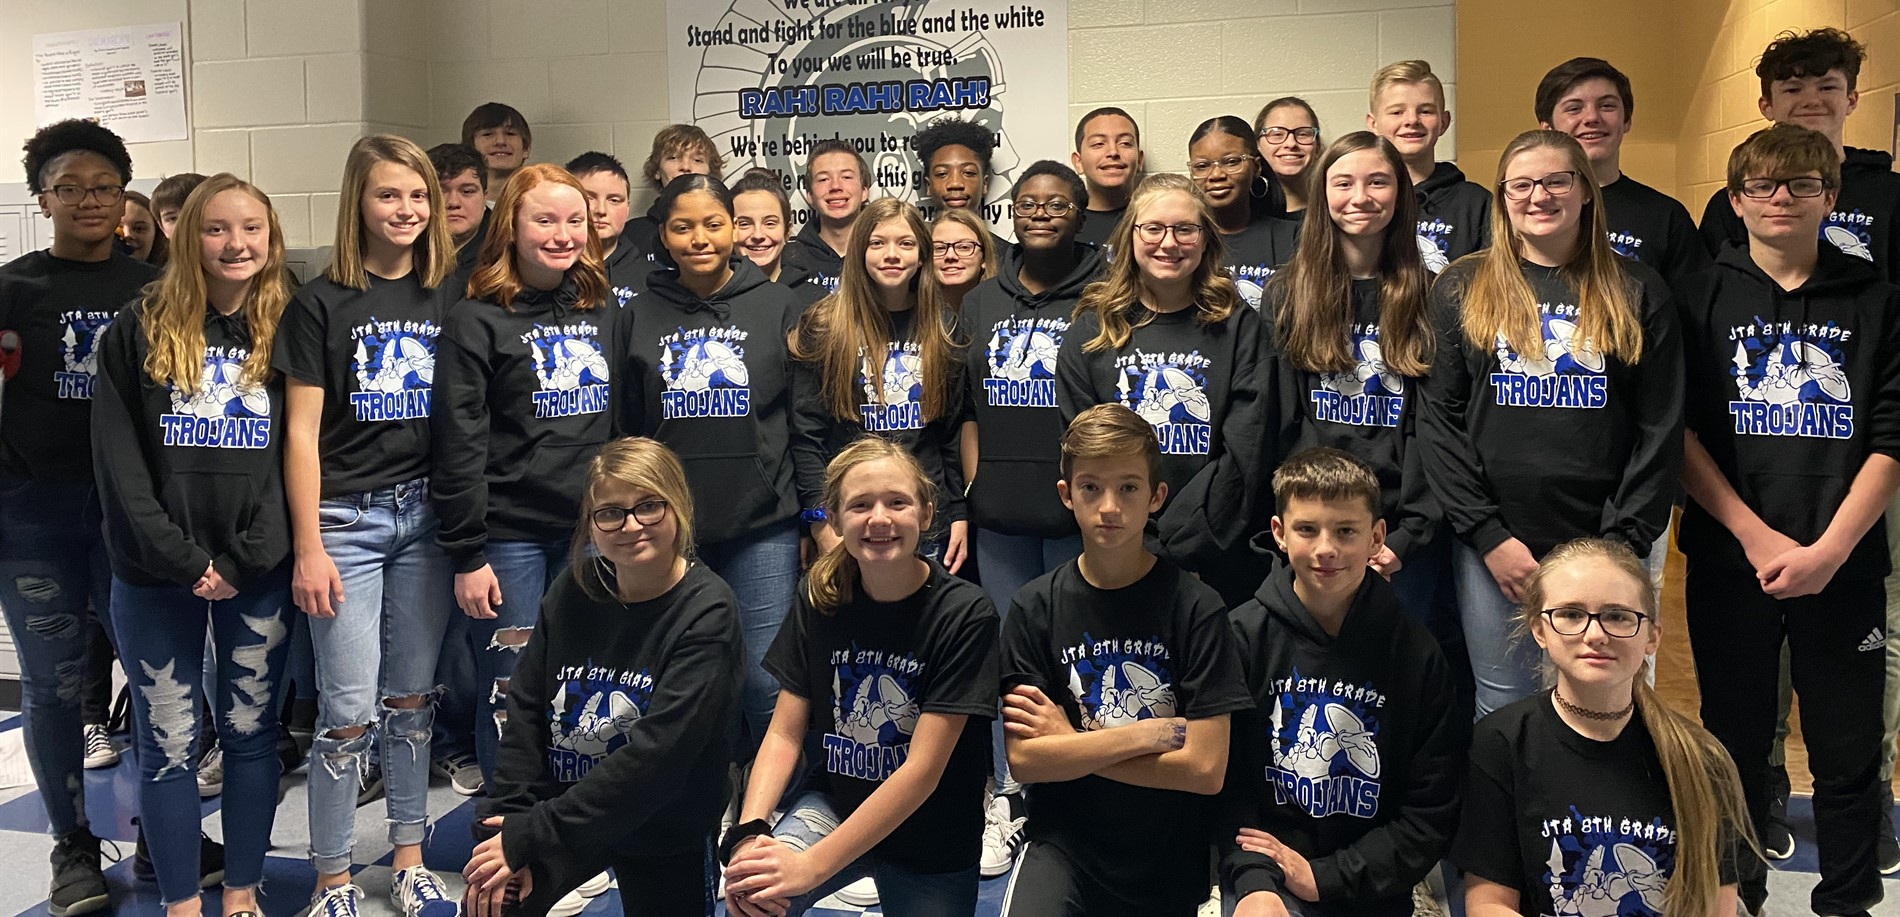 8th Grade Guardians of the Galaxy with their Class Shirts